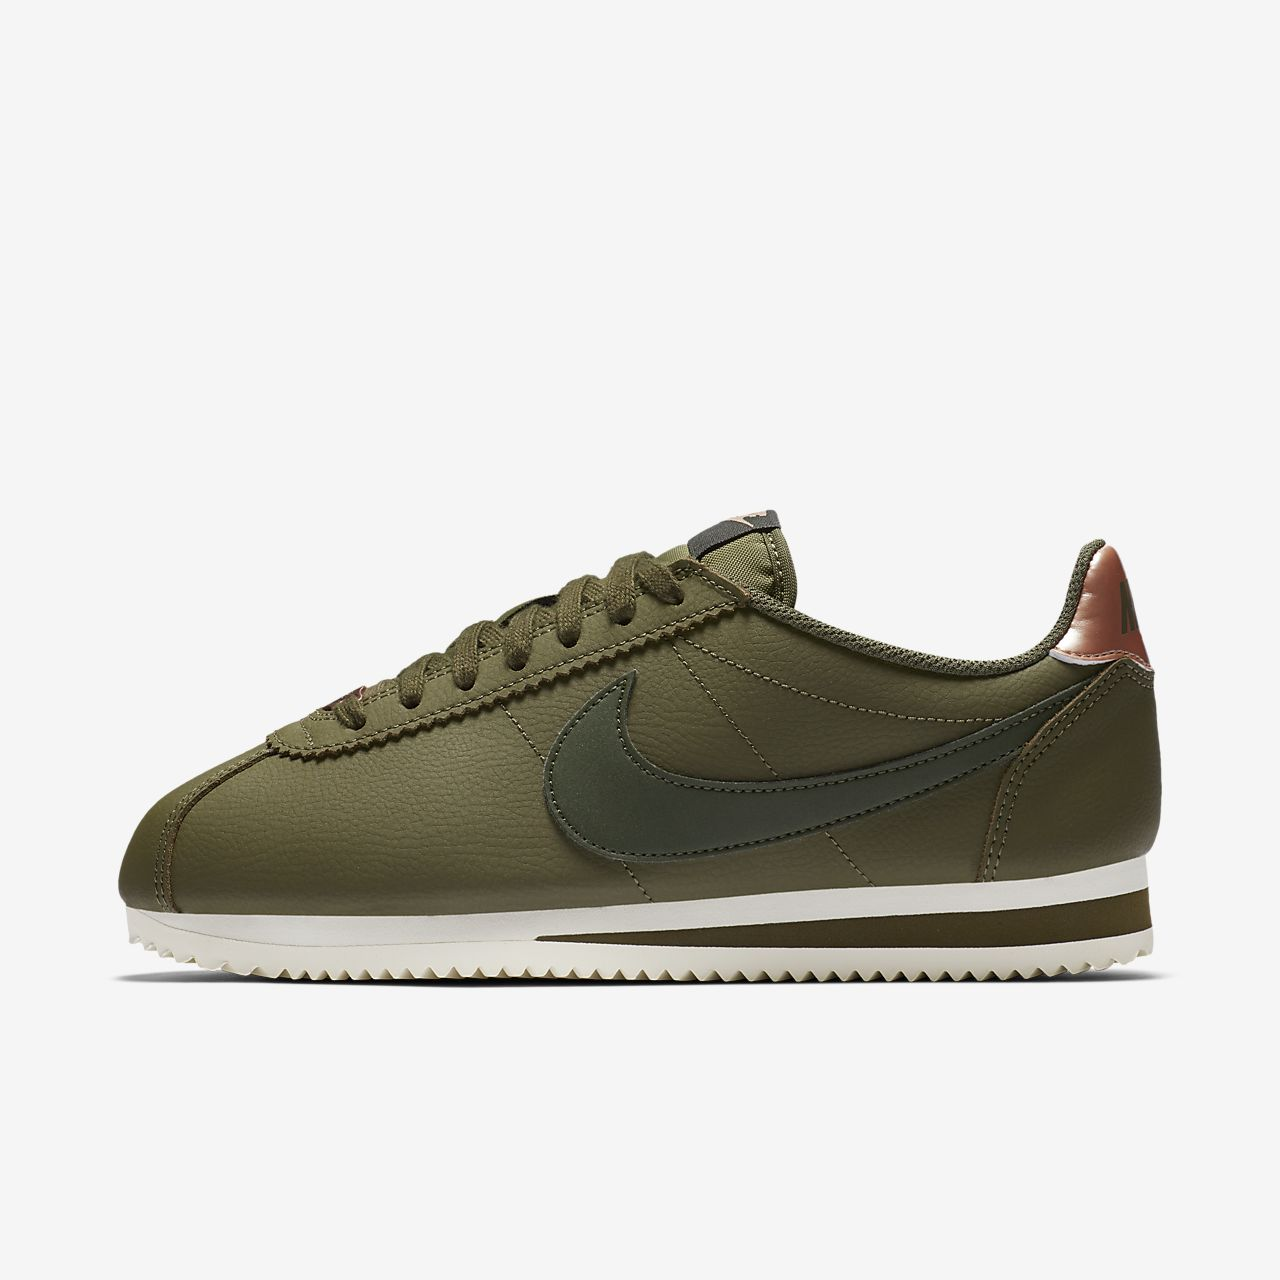 quality design 7bb46 a9b4c Nike Classic Cortez Leather Women's Shoe